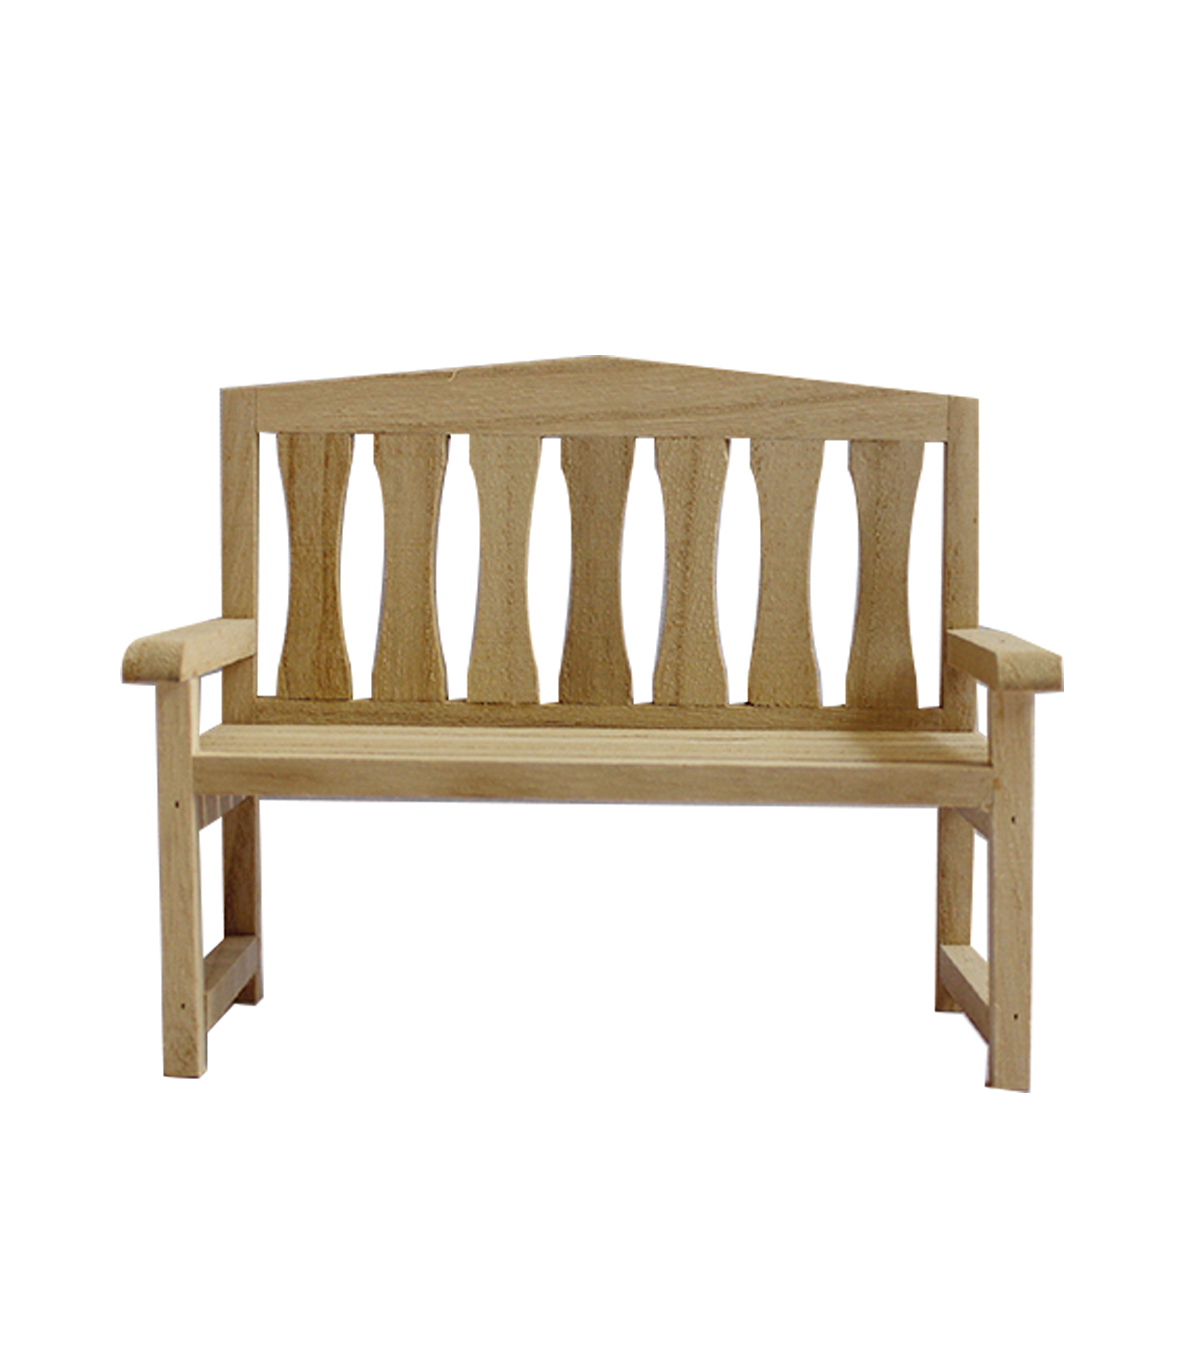 3D Wood Furniture Bench